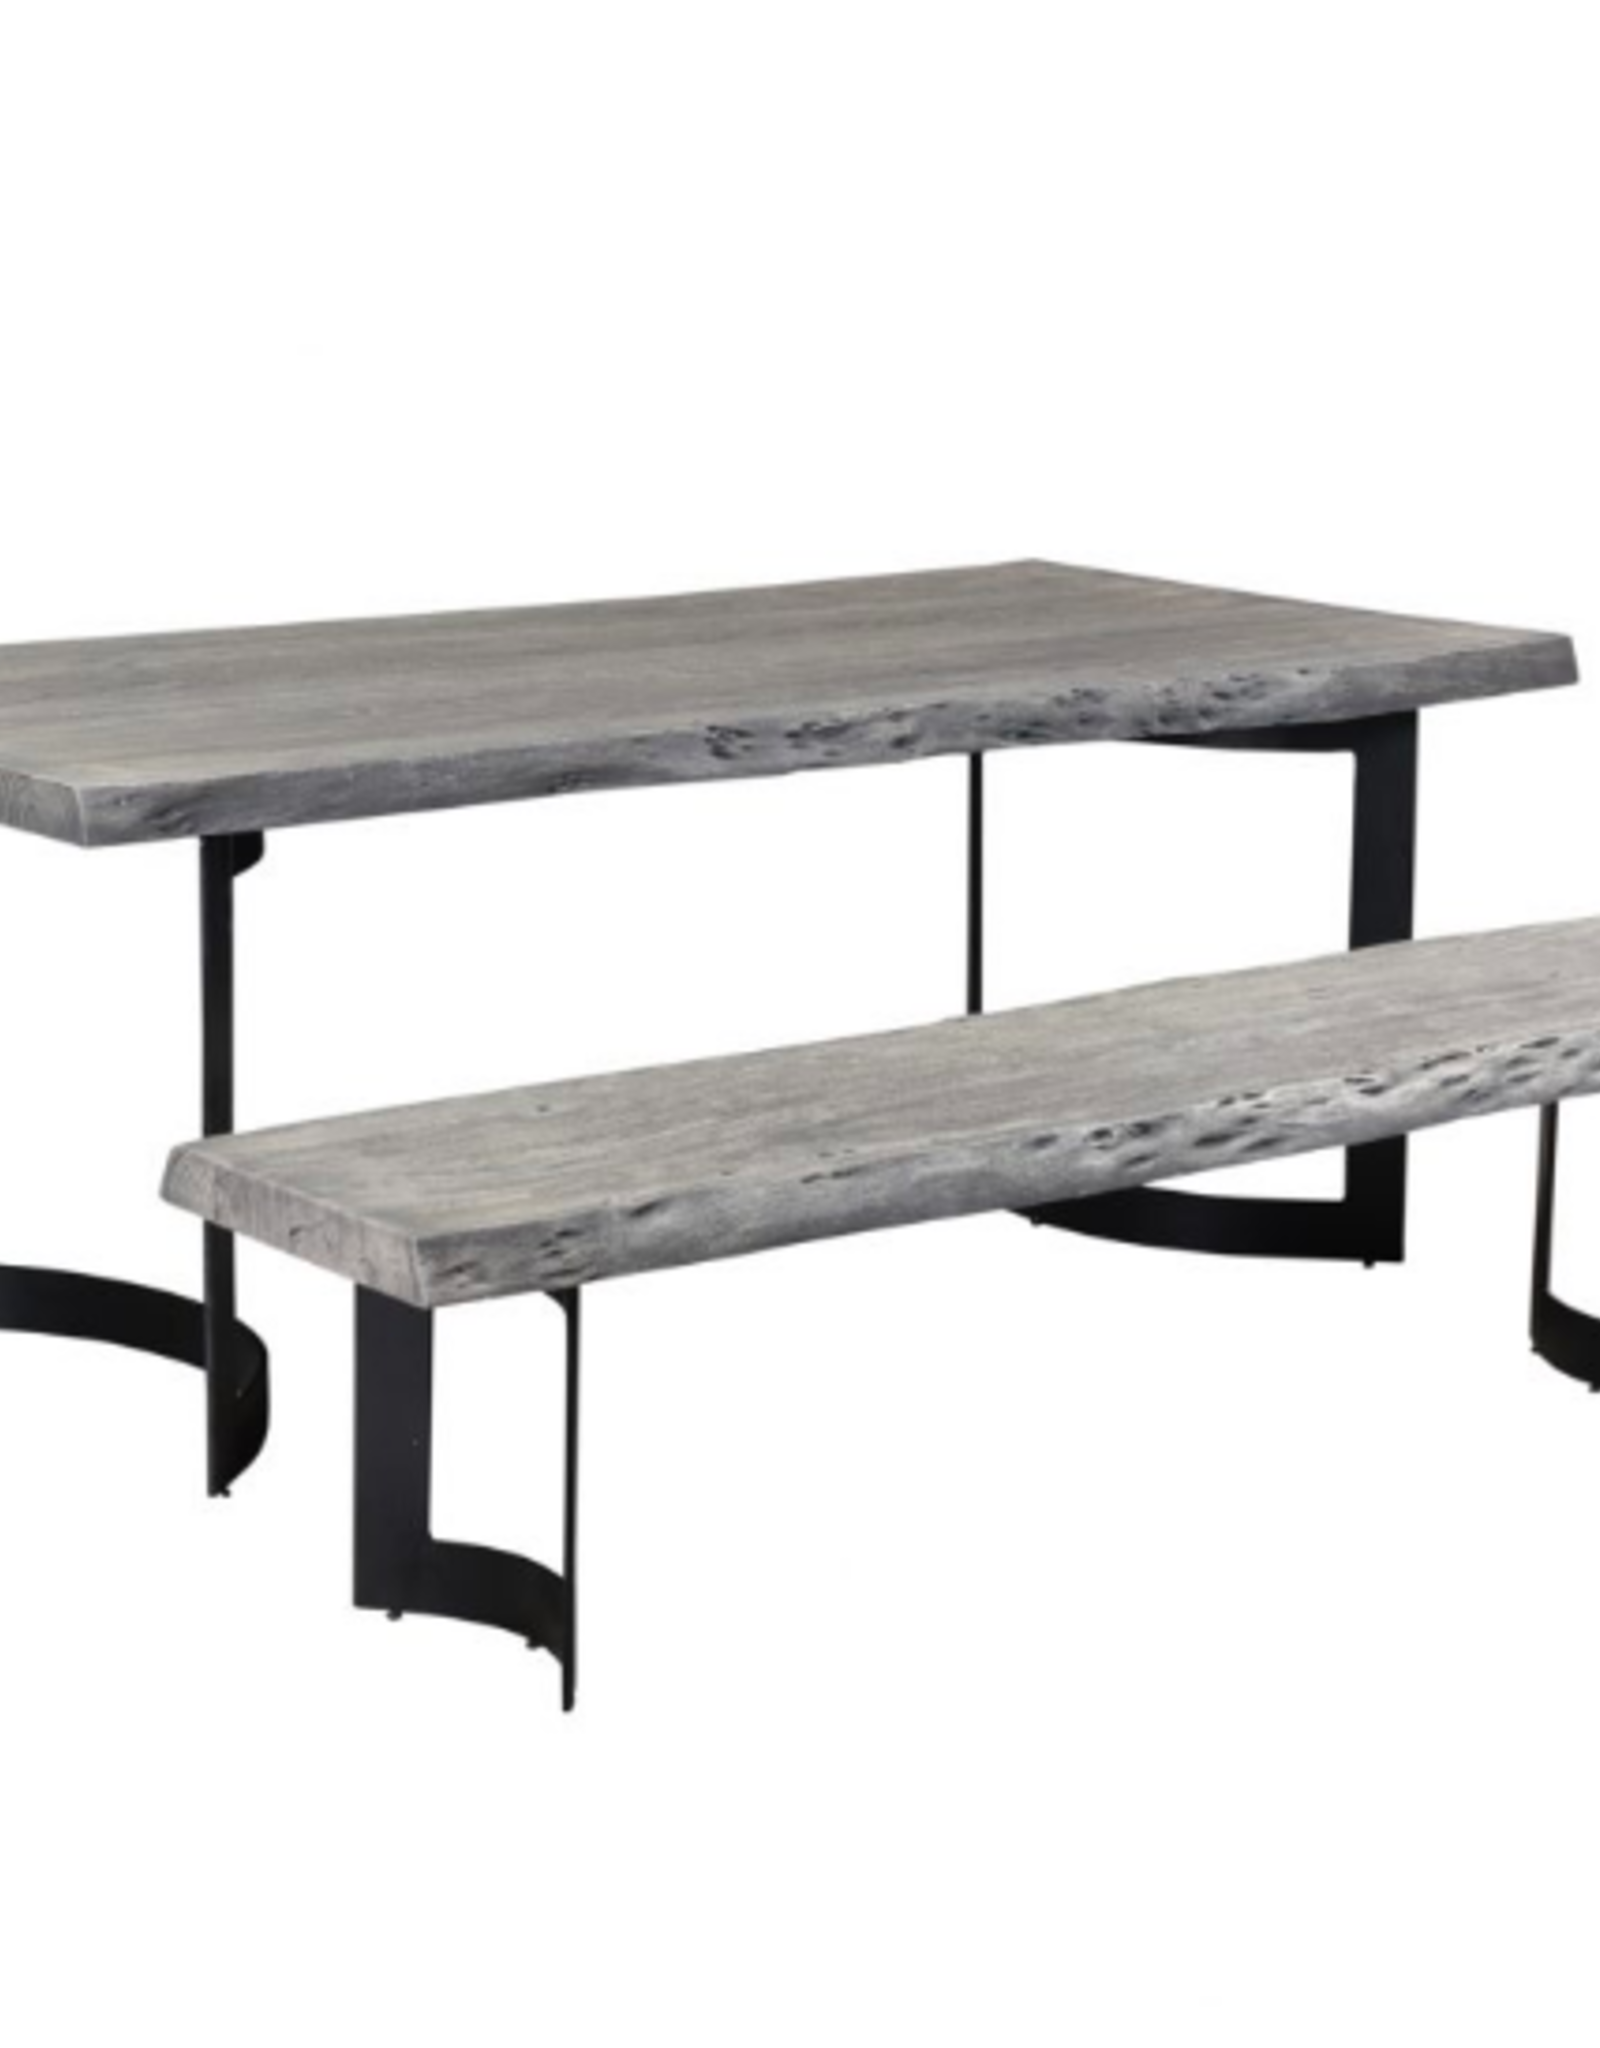 Moes Home Collection Moes Bent Bench Small Weathered Grey VE-1038-29